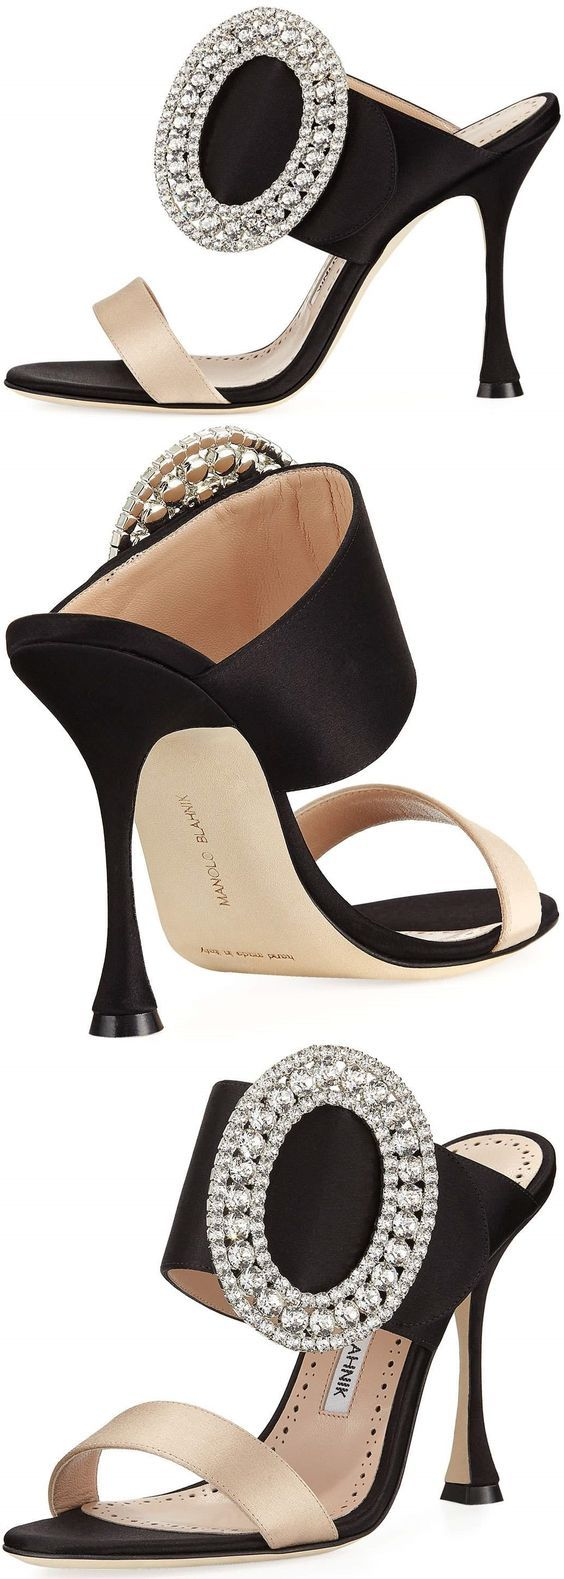 Yule style!! Noel Christmas New Year's Eve!! Party shoes to dance the night away! Black and cream with a glittered oversized buckle! For a Little Black Dress! Manolo Blahnik